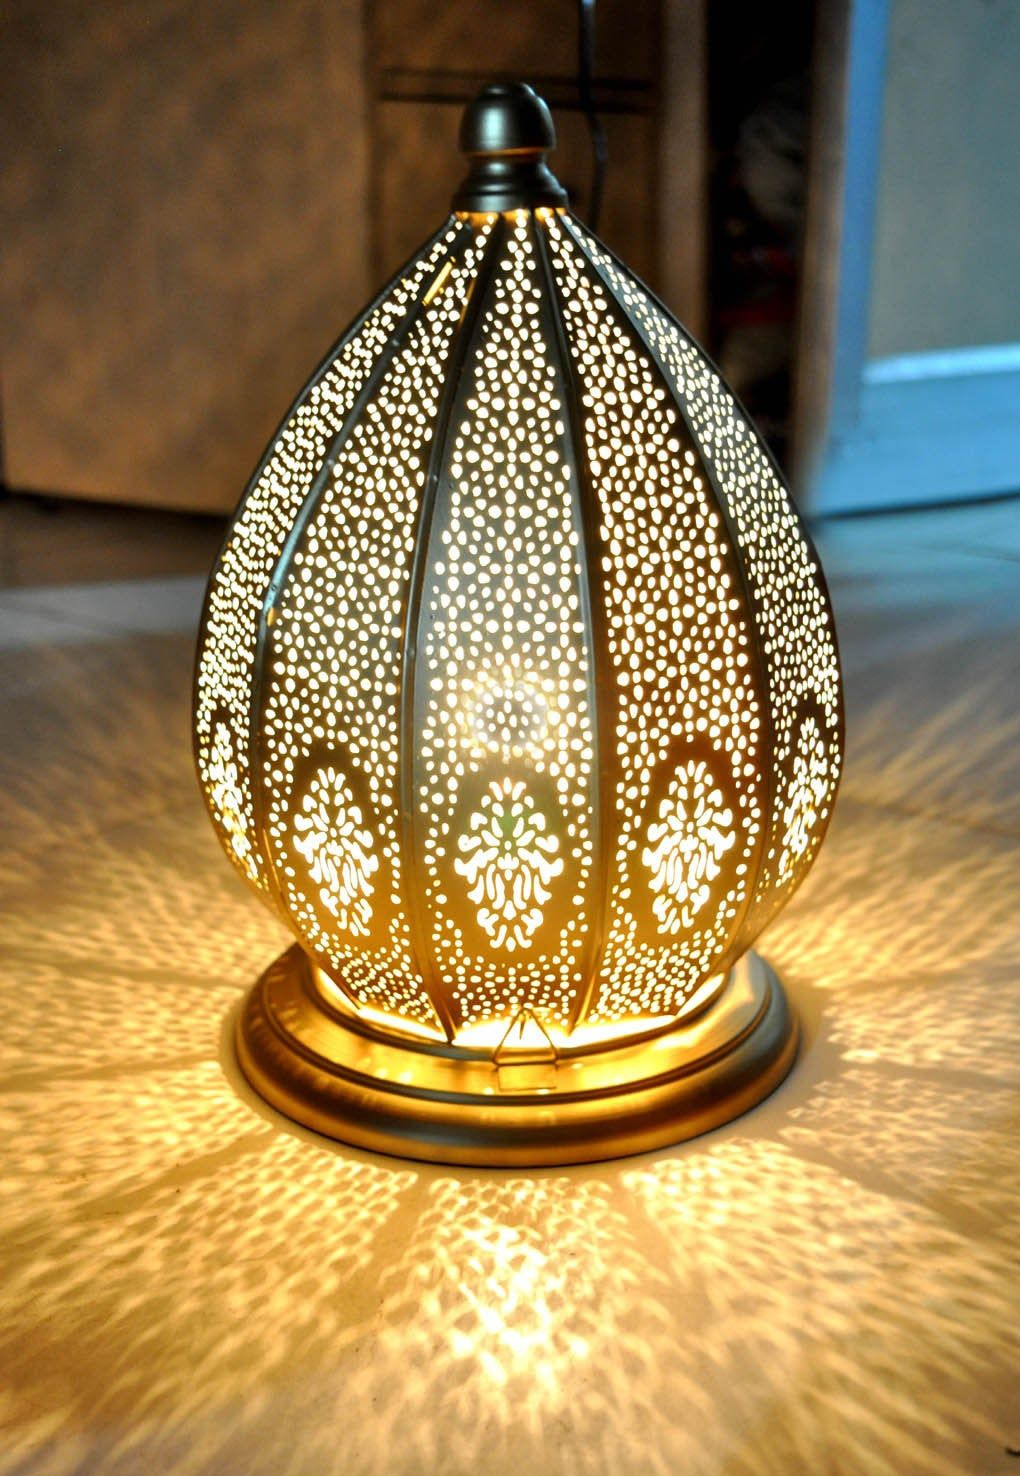 Moroccan Table Lamp Bedside Desk Light Metal Lamps Shade For Study